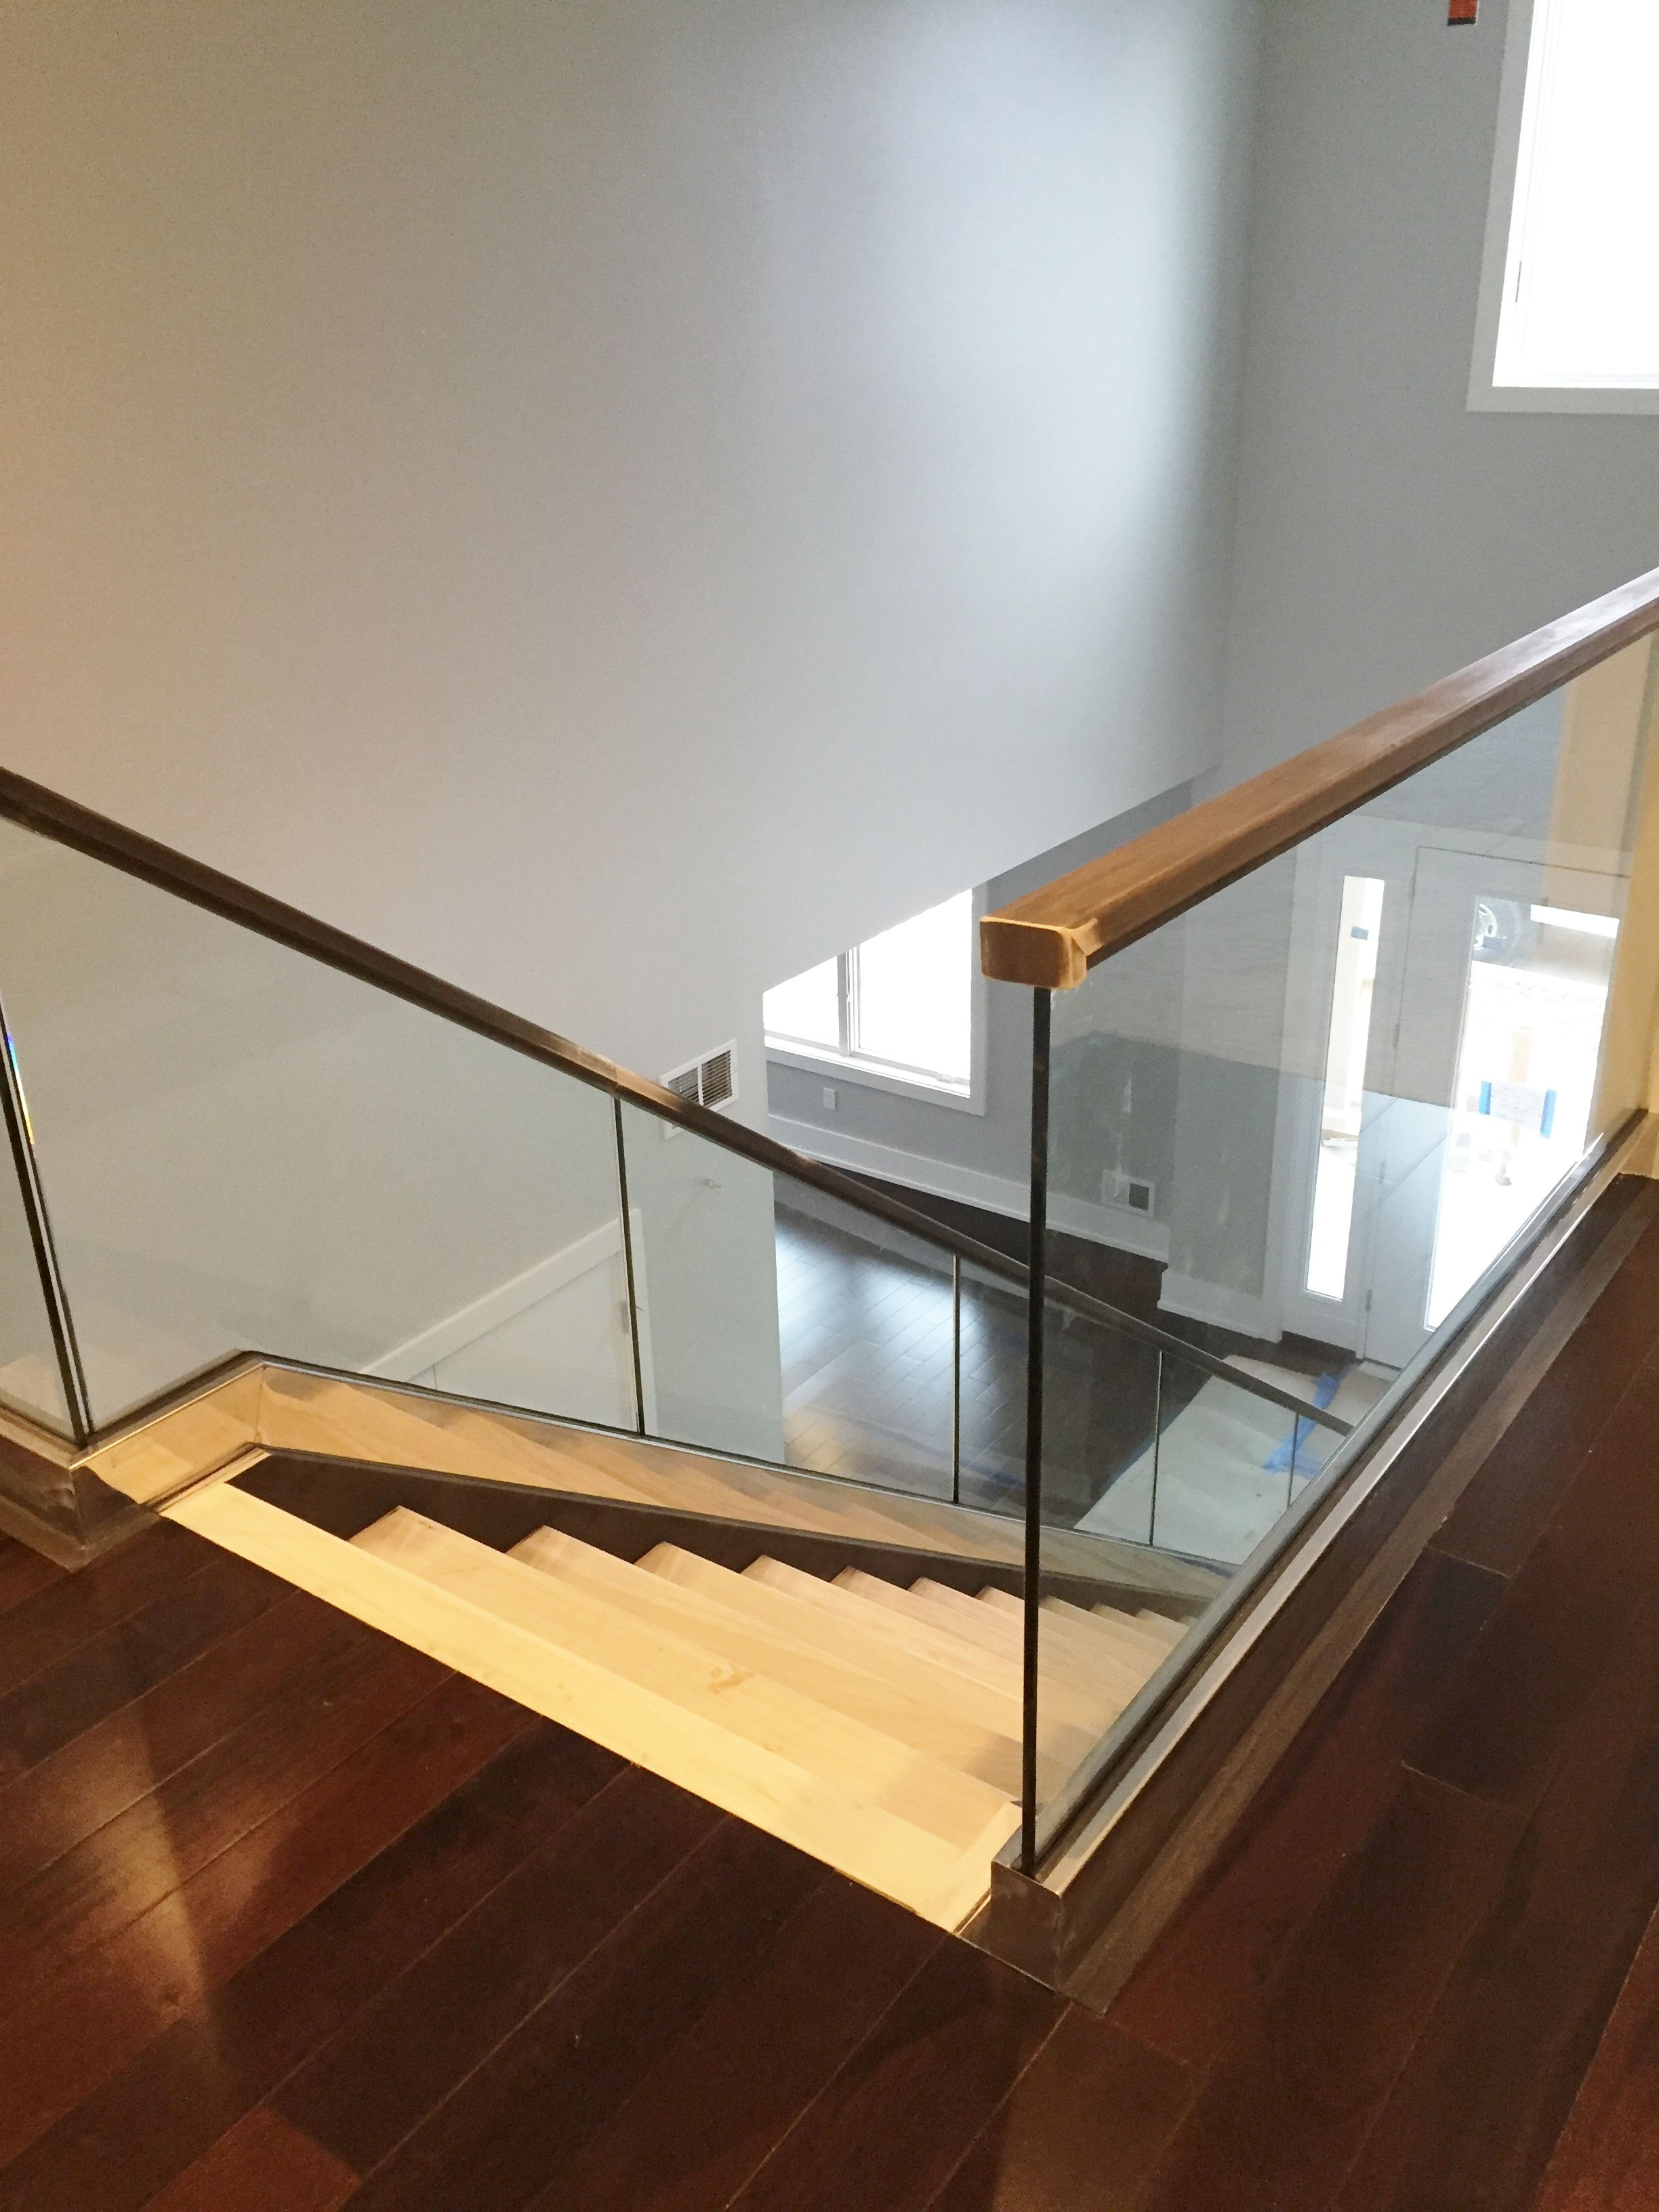 Glass Railing System Furnished Installed By Rex Glass Mirror | Indoor Stair Railings Home Depot | Metal | Interior | Deck Stair | Aluminum Railing | Iron Stair